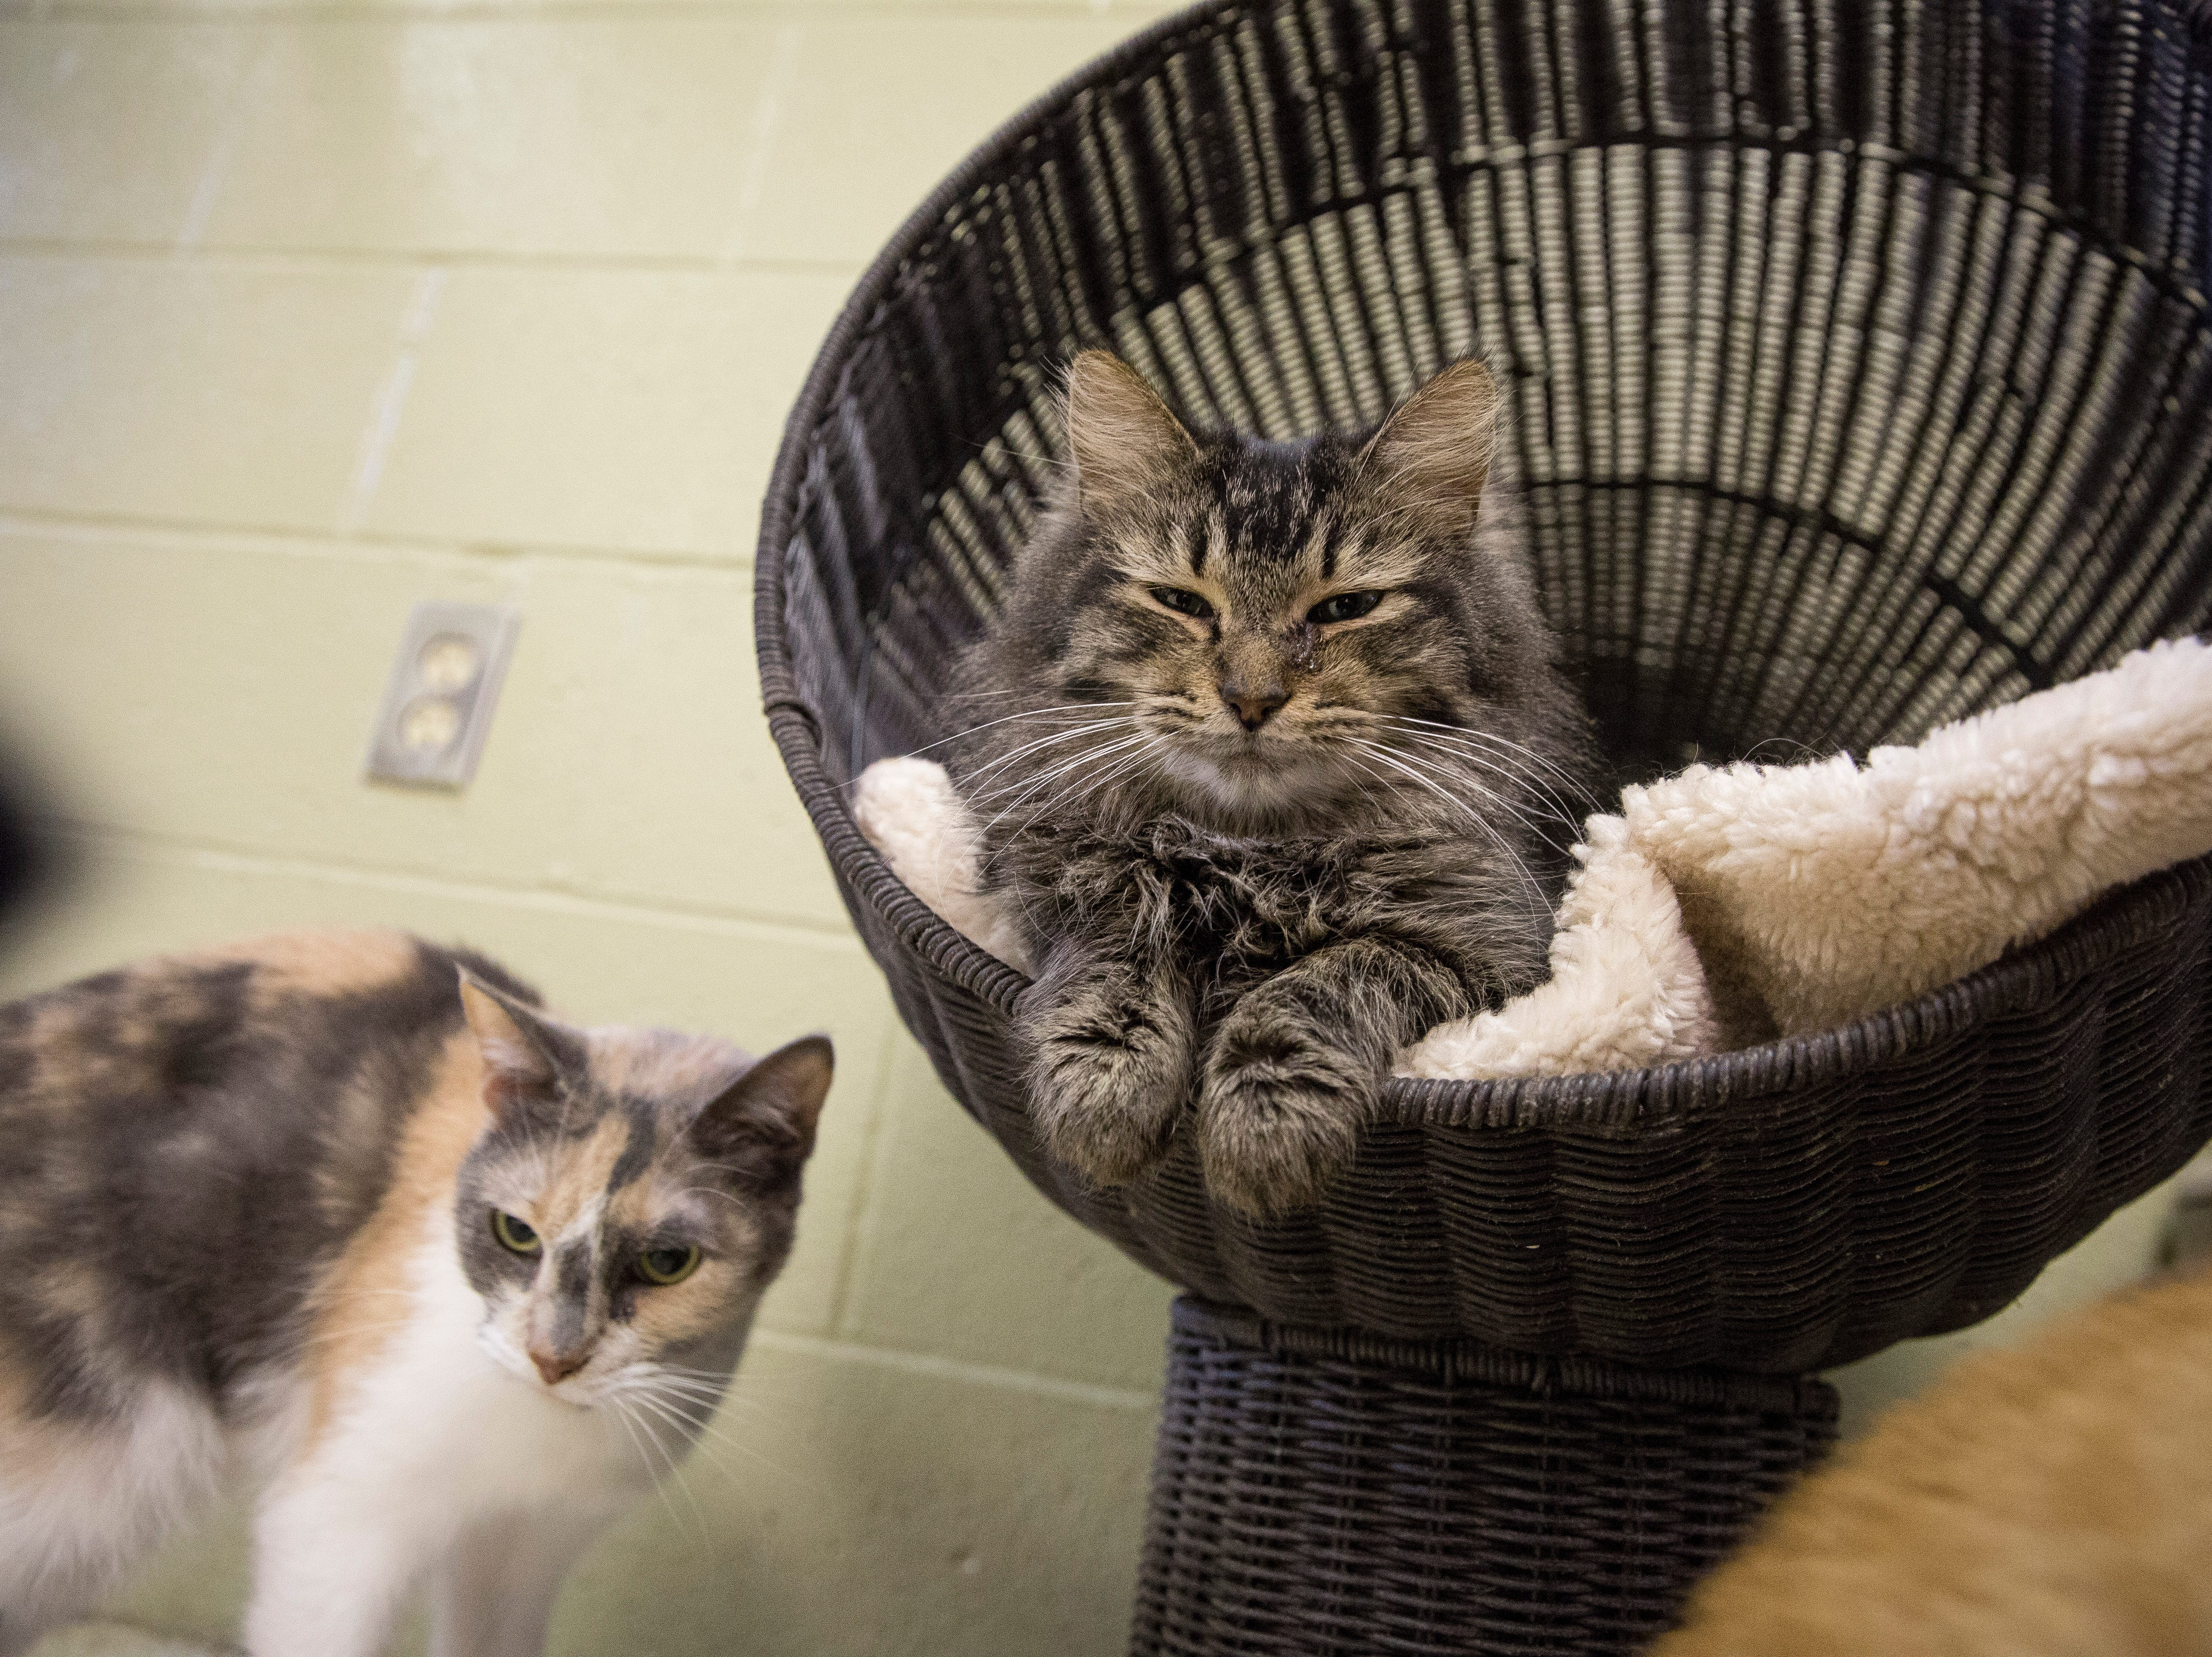 Cats wait to be adopted on the adoption floor of the Muncie Animal Shelter Tuesday afternoon. The shelter will have a 24 hour adoption event starting Friday at midnight where all dogs will be $5 to adopt, while all cats and kittens will be $1 to adopt.